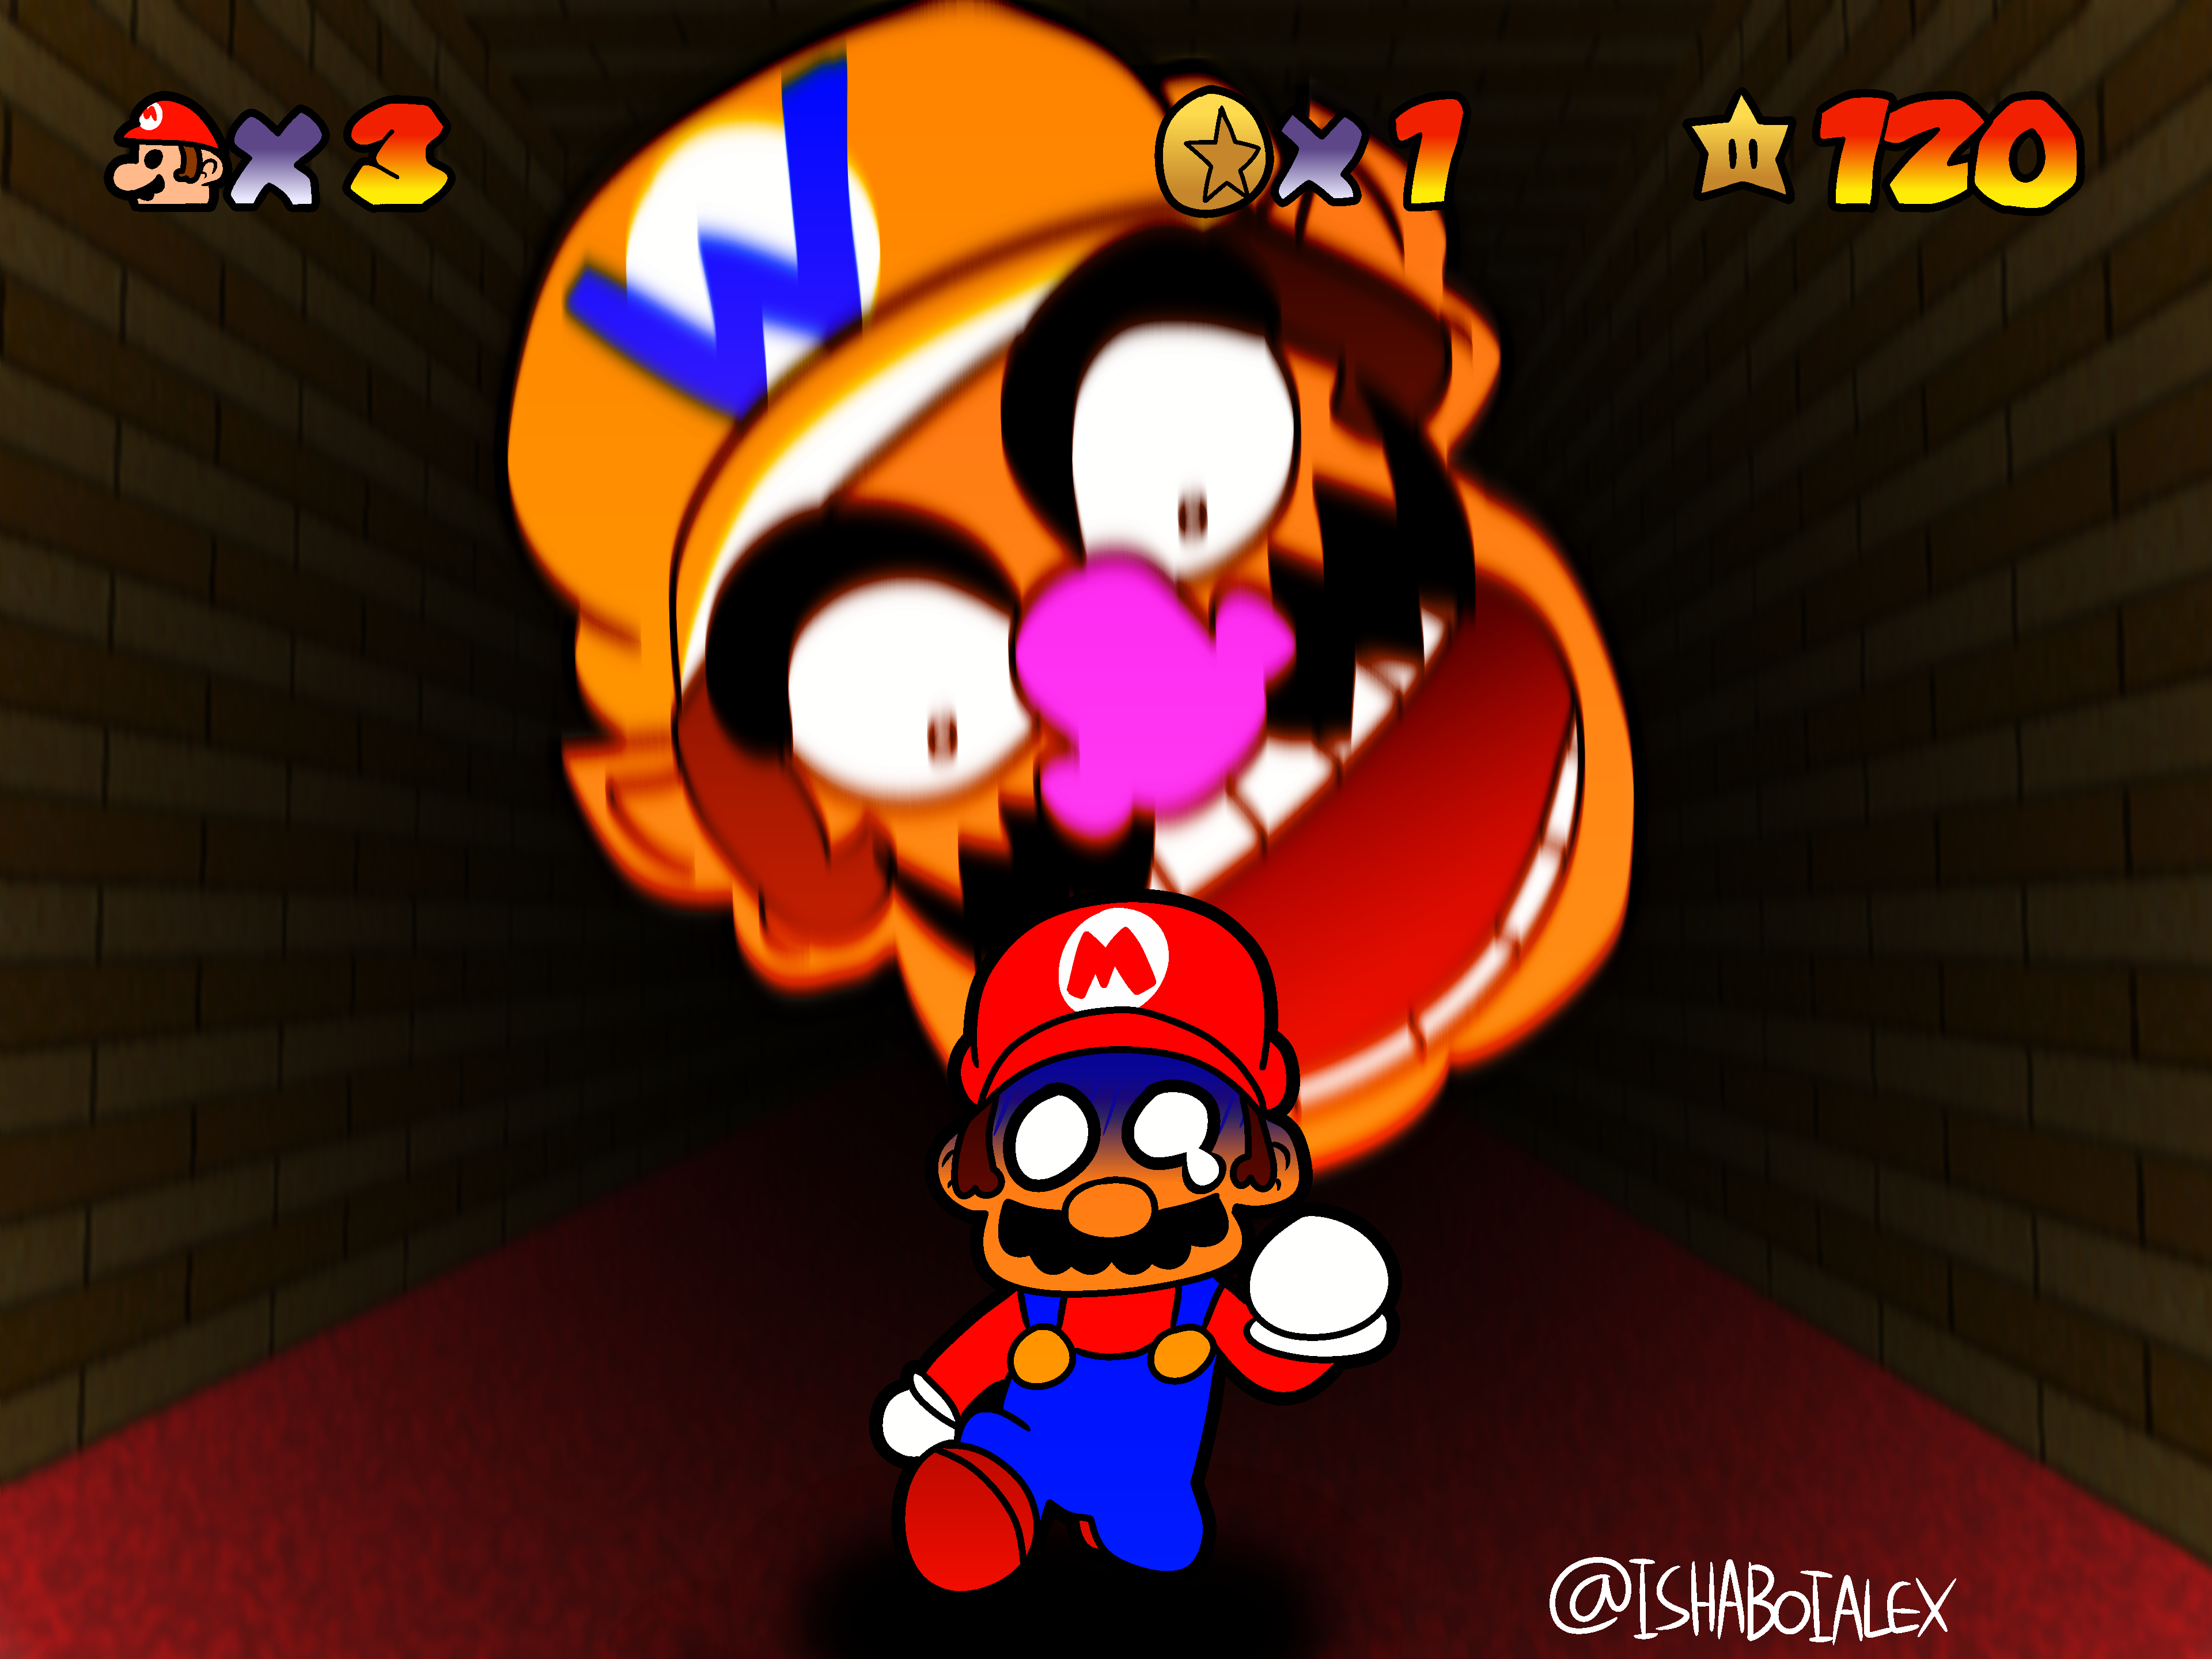 THE WARIO APPARITION by IshaBoiAlex on Newgrounds